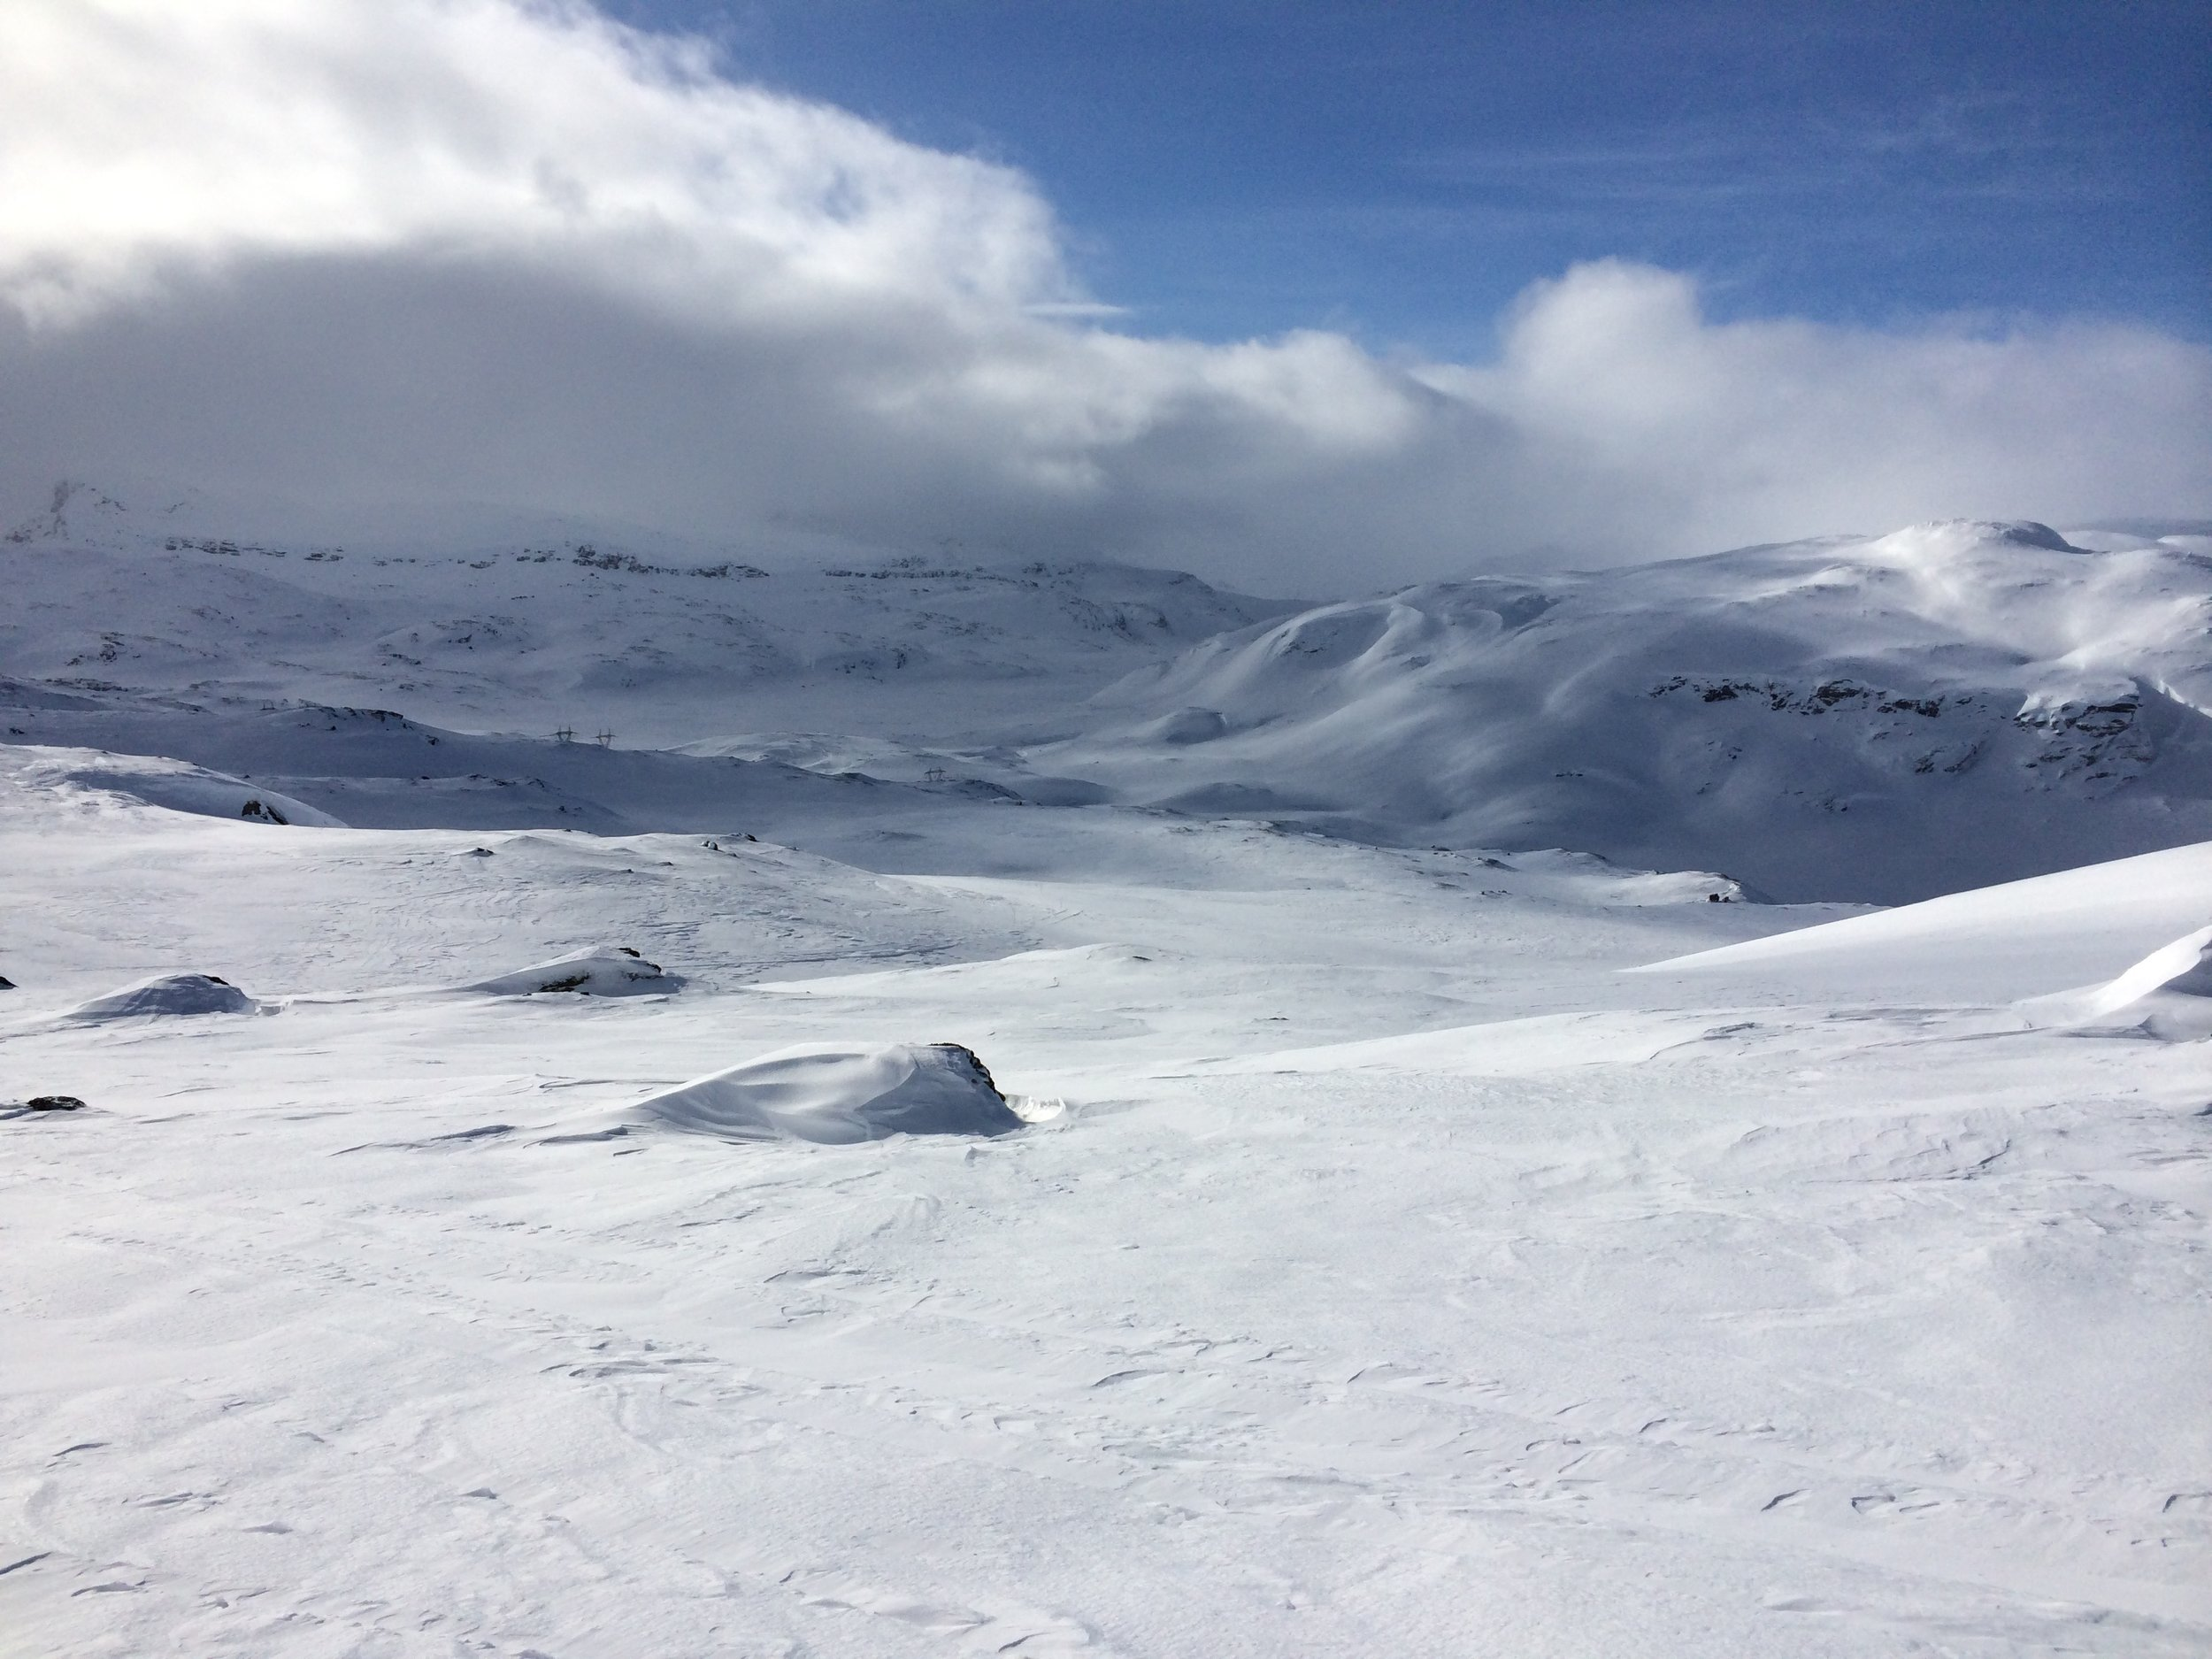 Bluebird sky, sheetwhite snow -   the hills of Hardangervidda